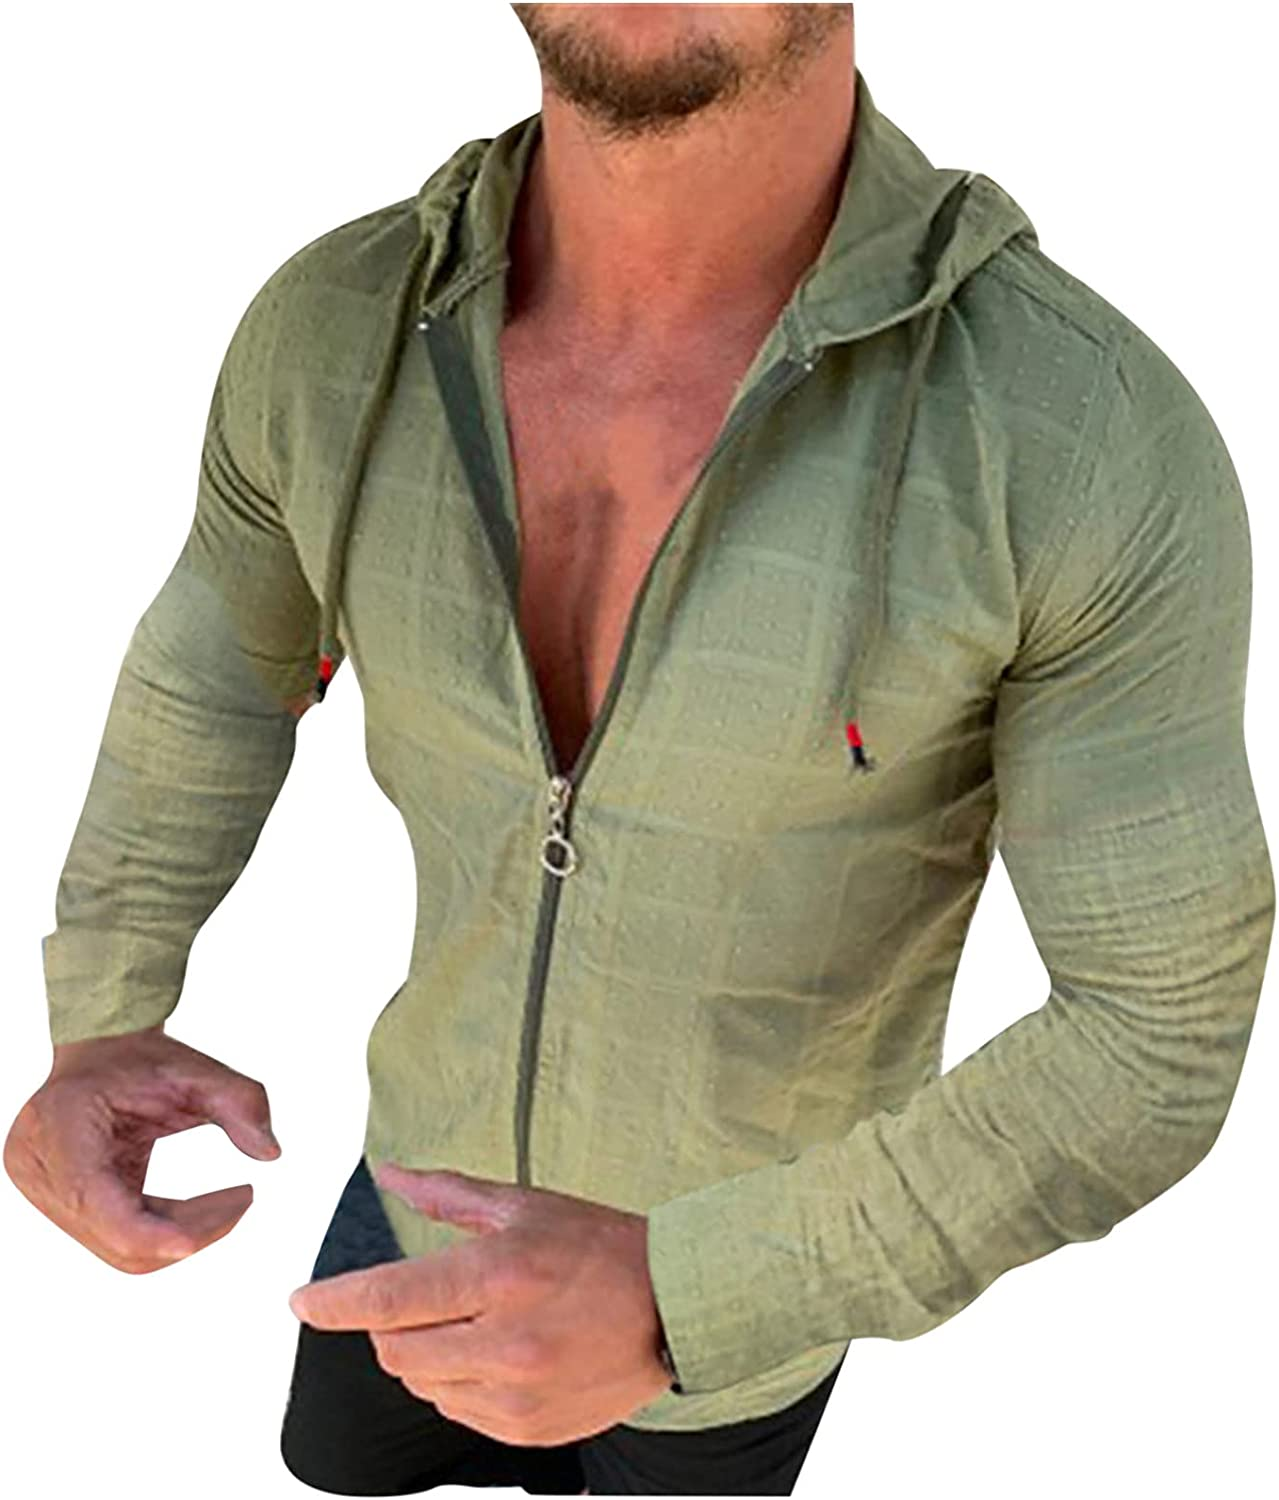 Mens Zipper Hooded Shirts for Men Cardigan Lightweight Solid Color Casual Long Sleeve Drawstring Jackets Top